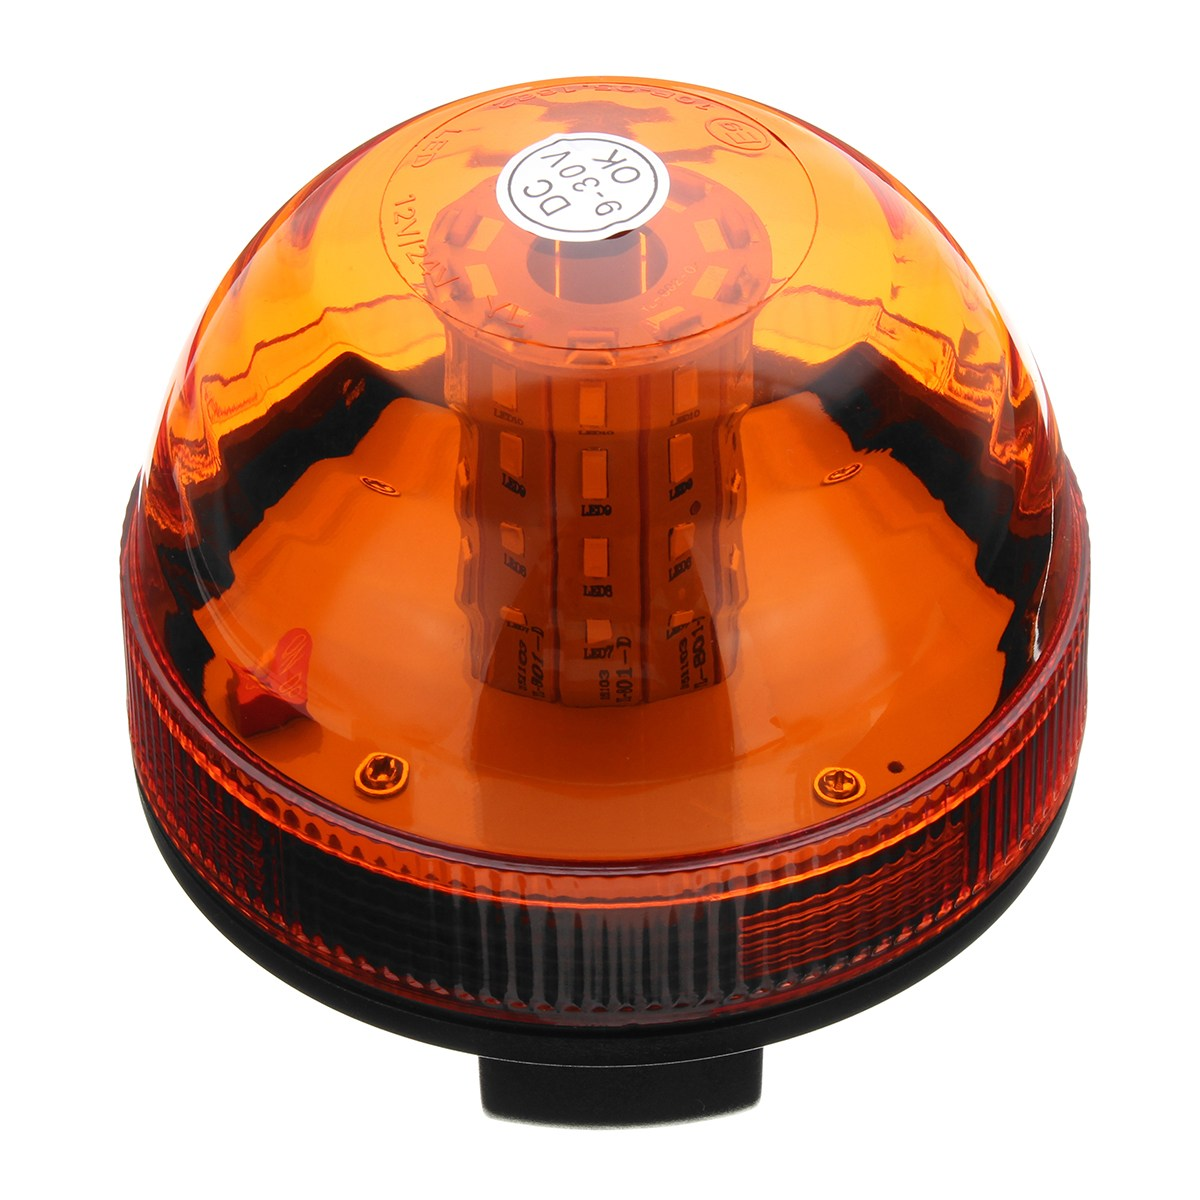 Car Truck 40 LED Rotating Flashing Amber Beacon Flexible Tractor Warning Light Roadway Safety